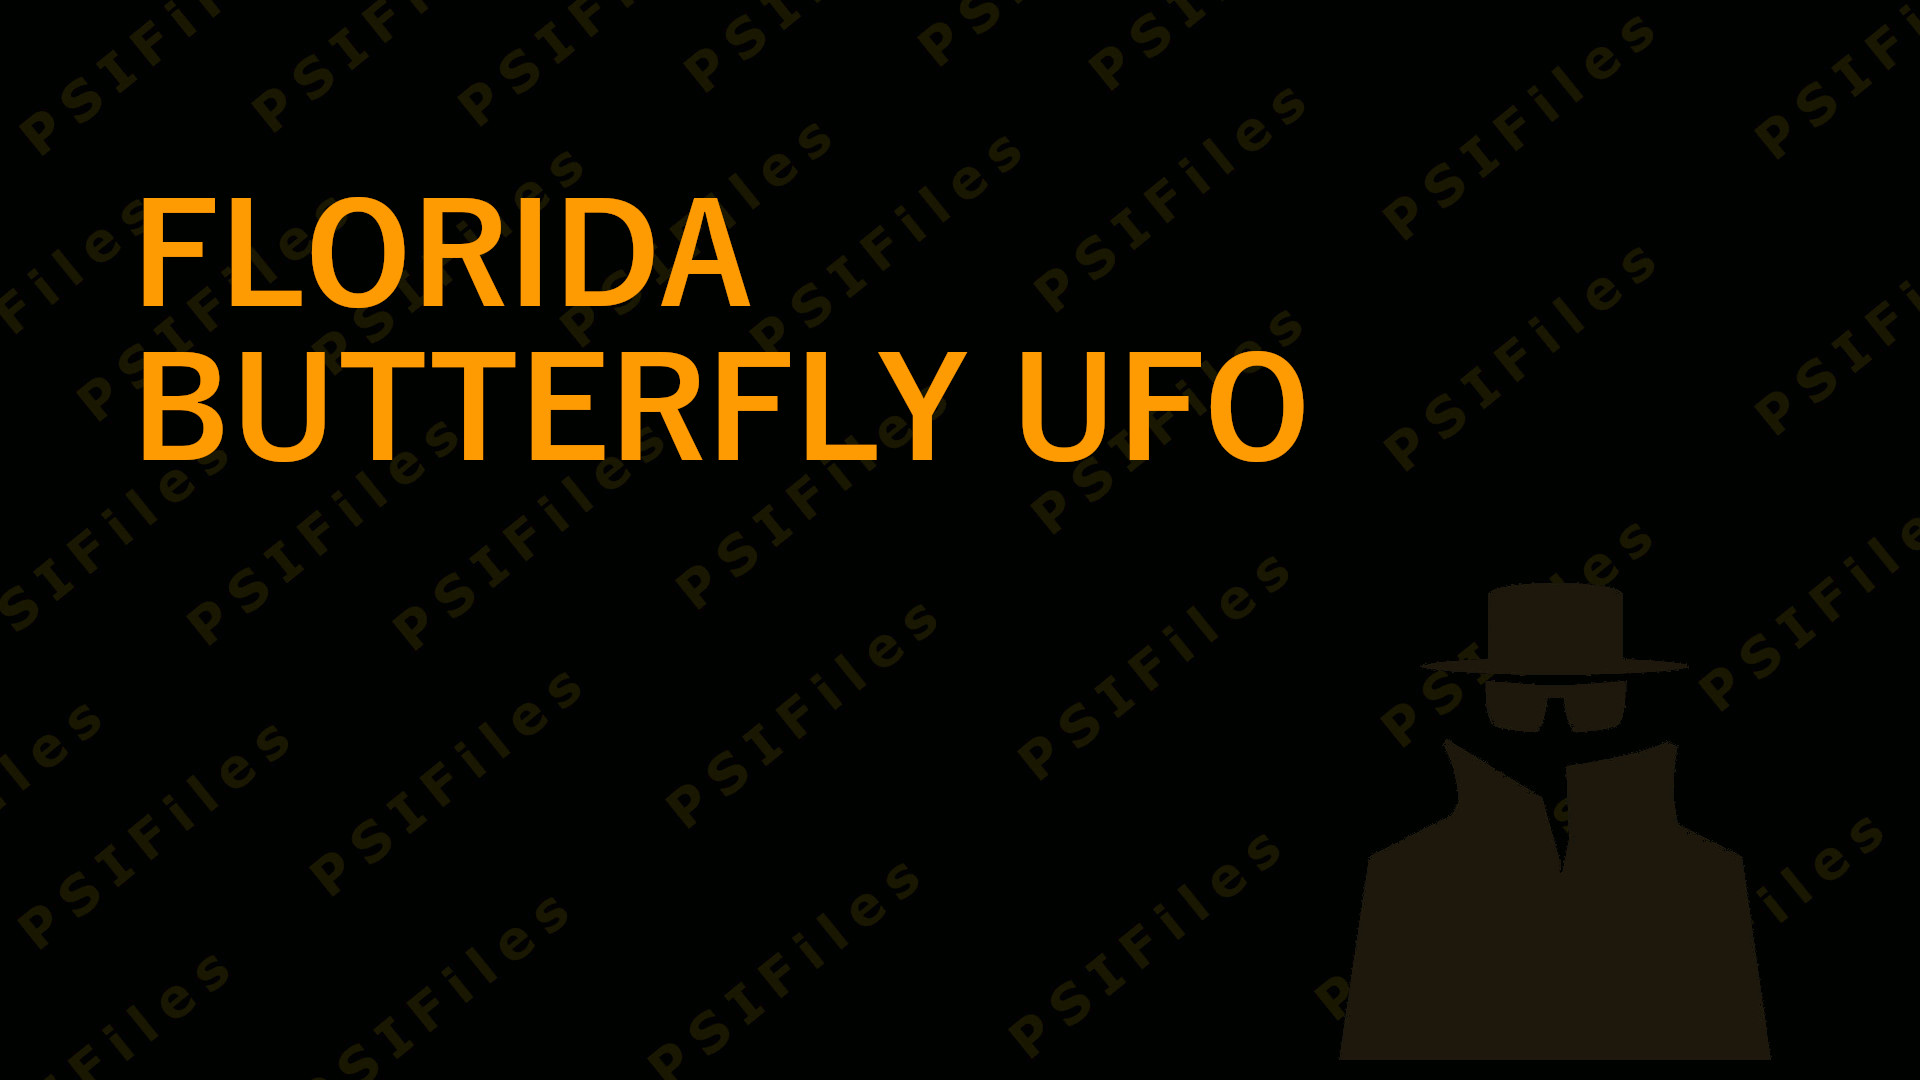 Florida Butterfly UFO